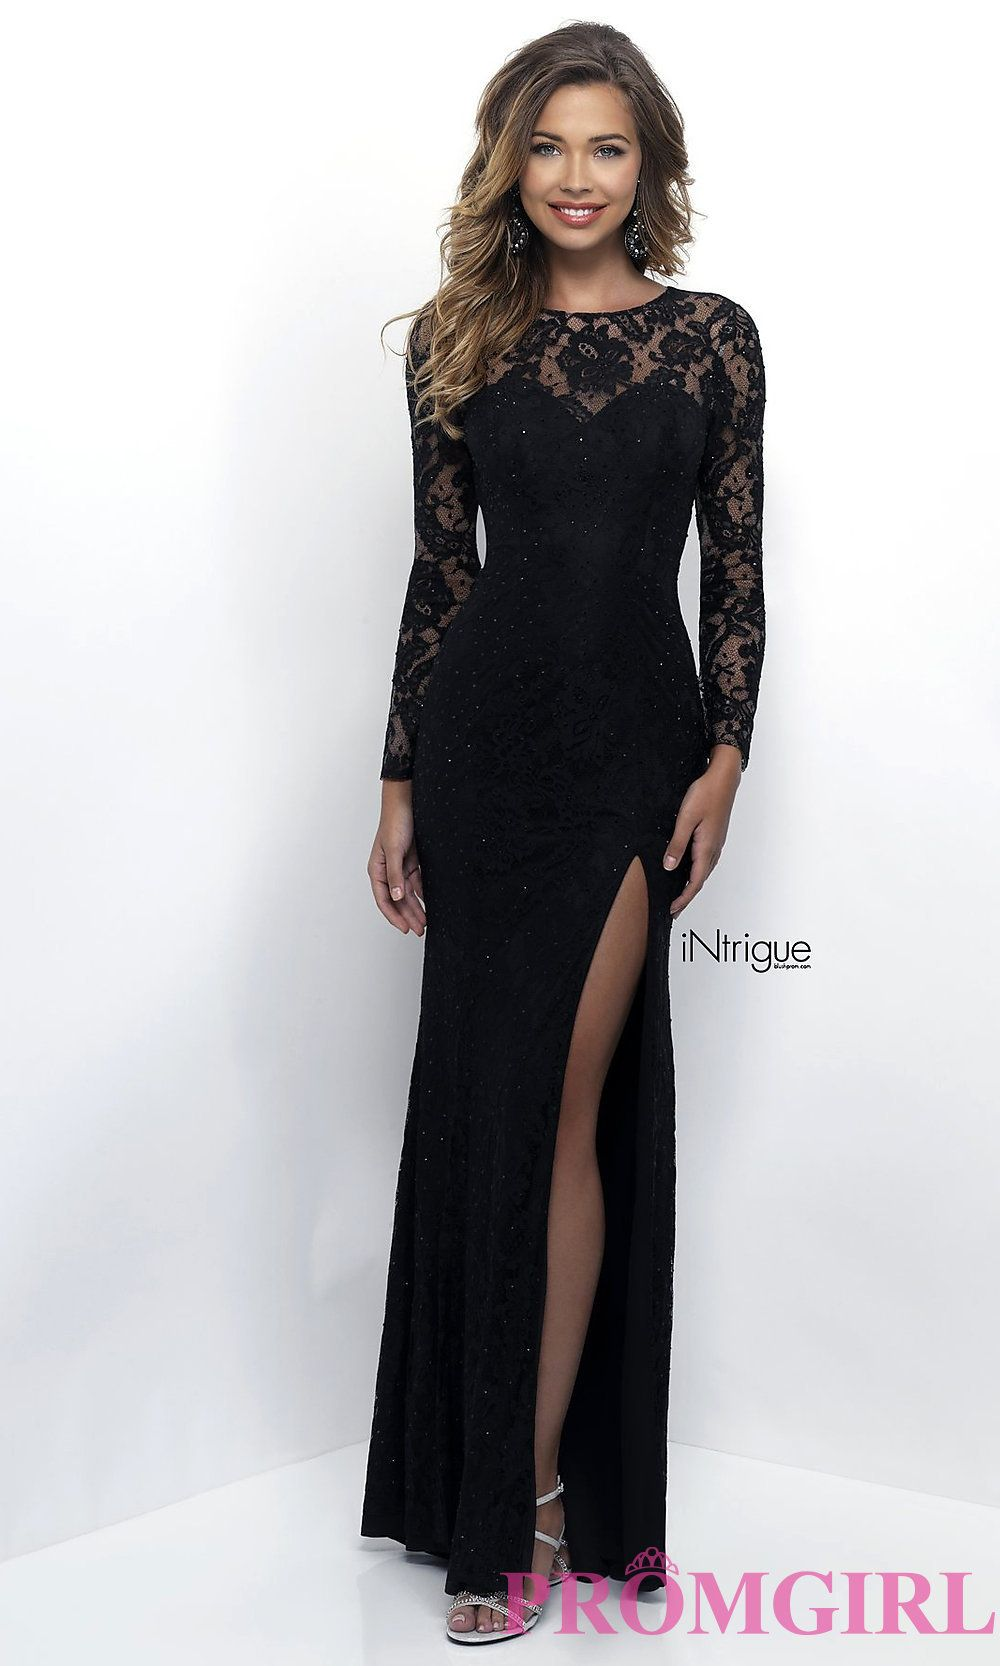 dce288bb3fad1 Long Sleeve Black Lace Prom Dress in 2019